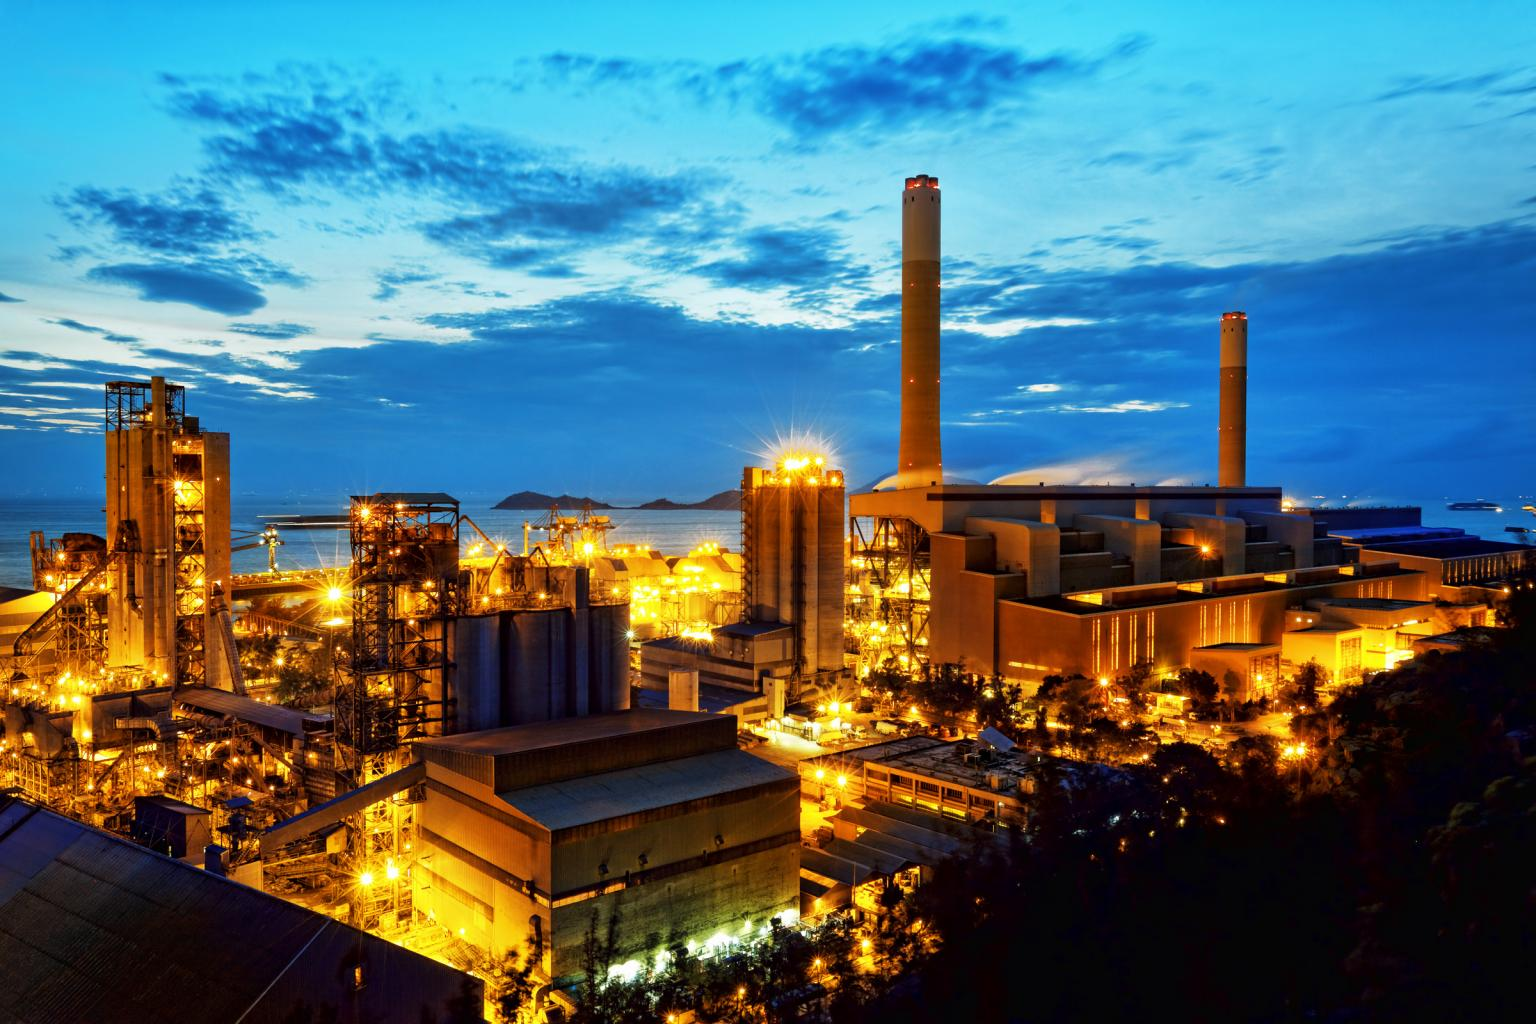 Sulzer has many years' experience in providing skilled engineers and engineering technology to the refinery sector. Image: Sulzer